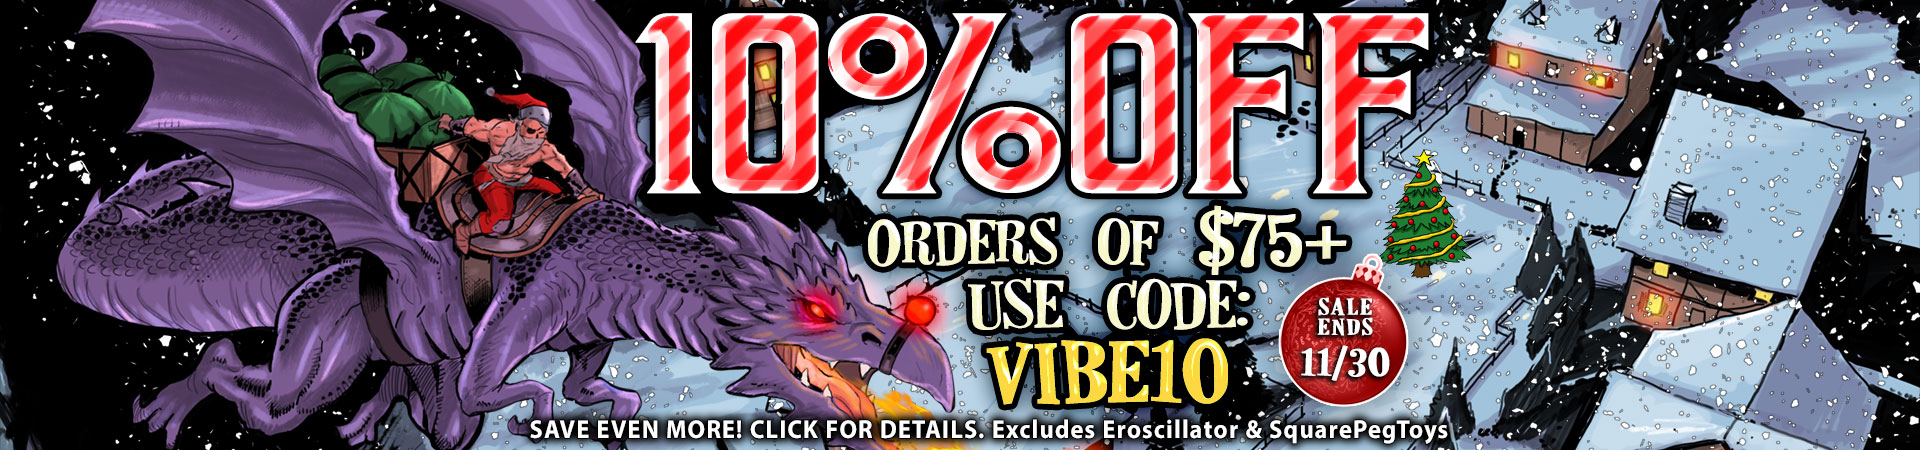 10% OFF ORDERS OF $75+ USE CODE: VIBE10